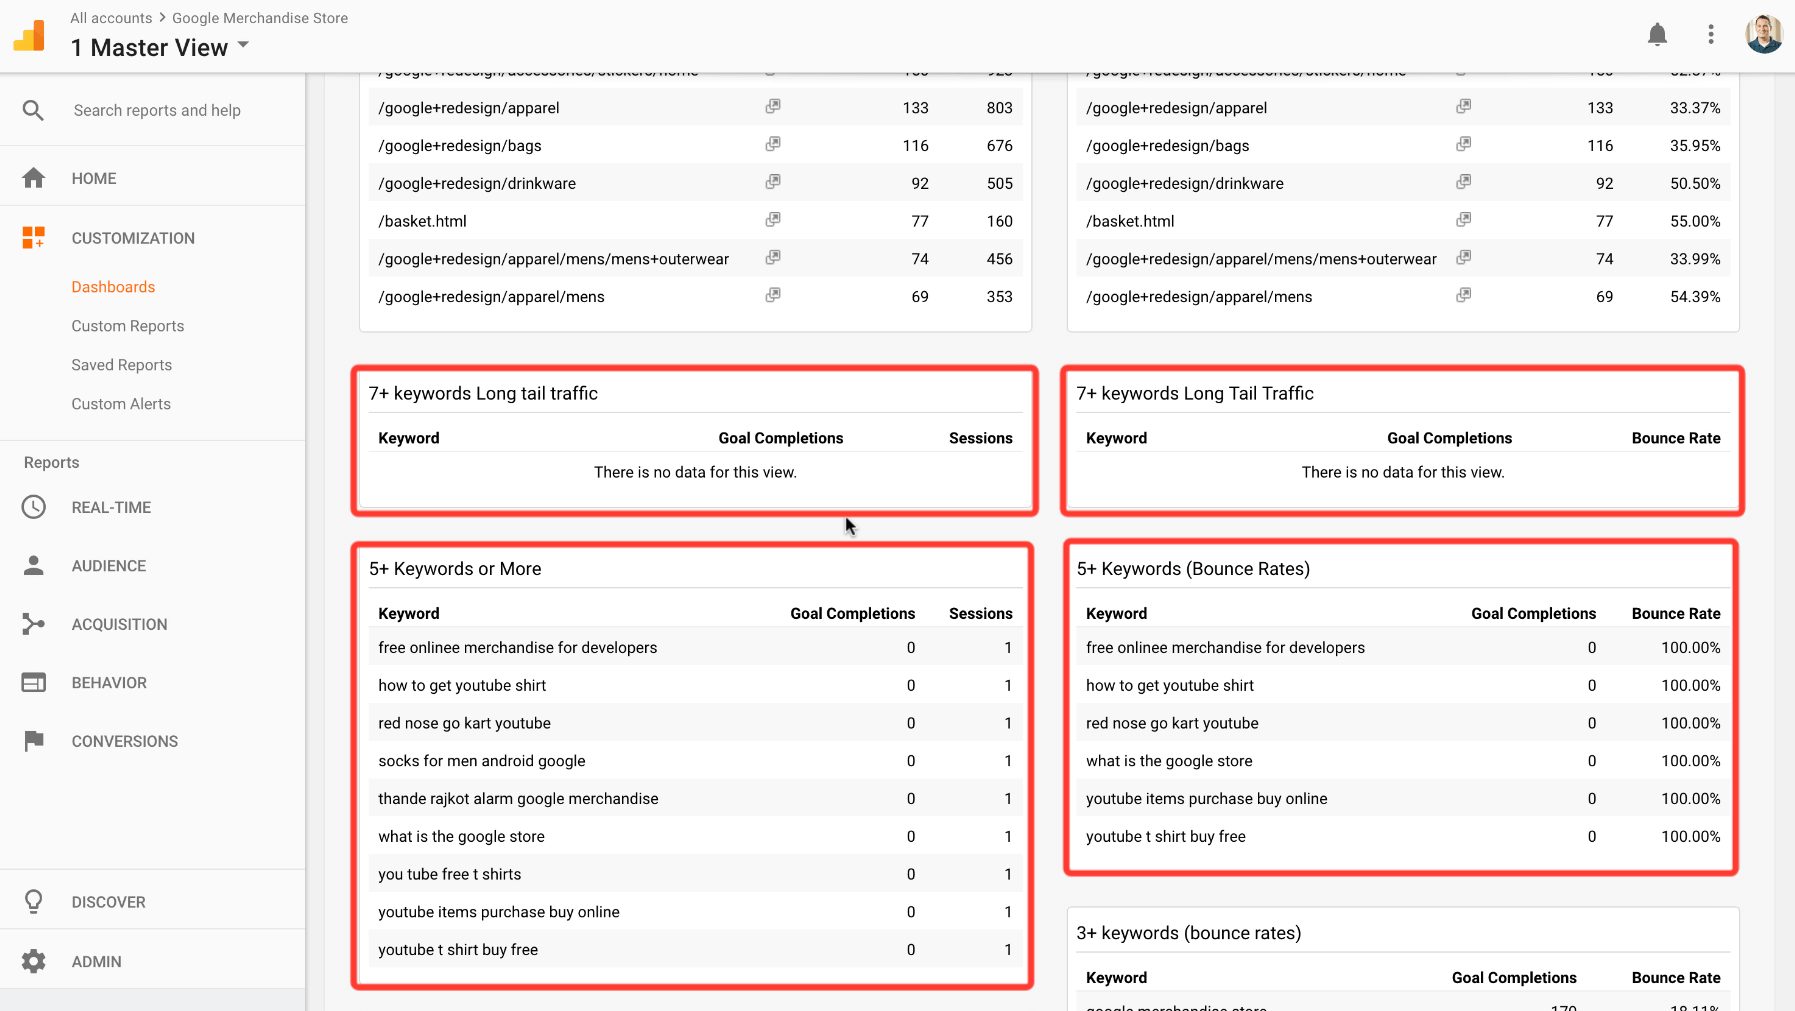 SEO Dashboard Keywords not available